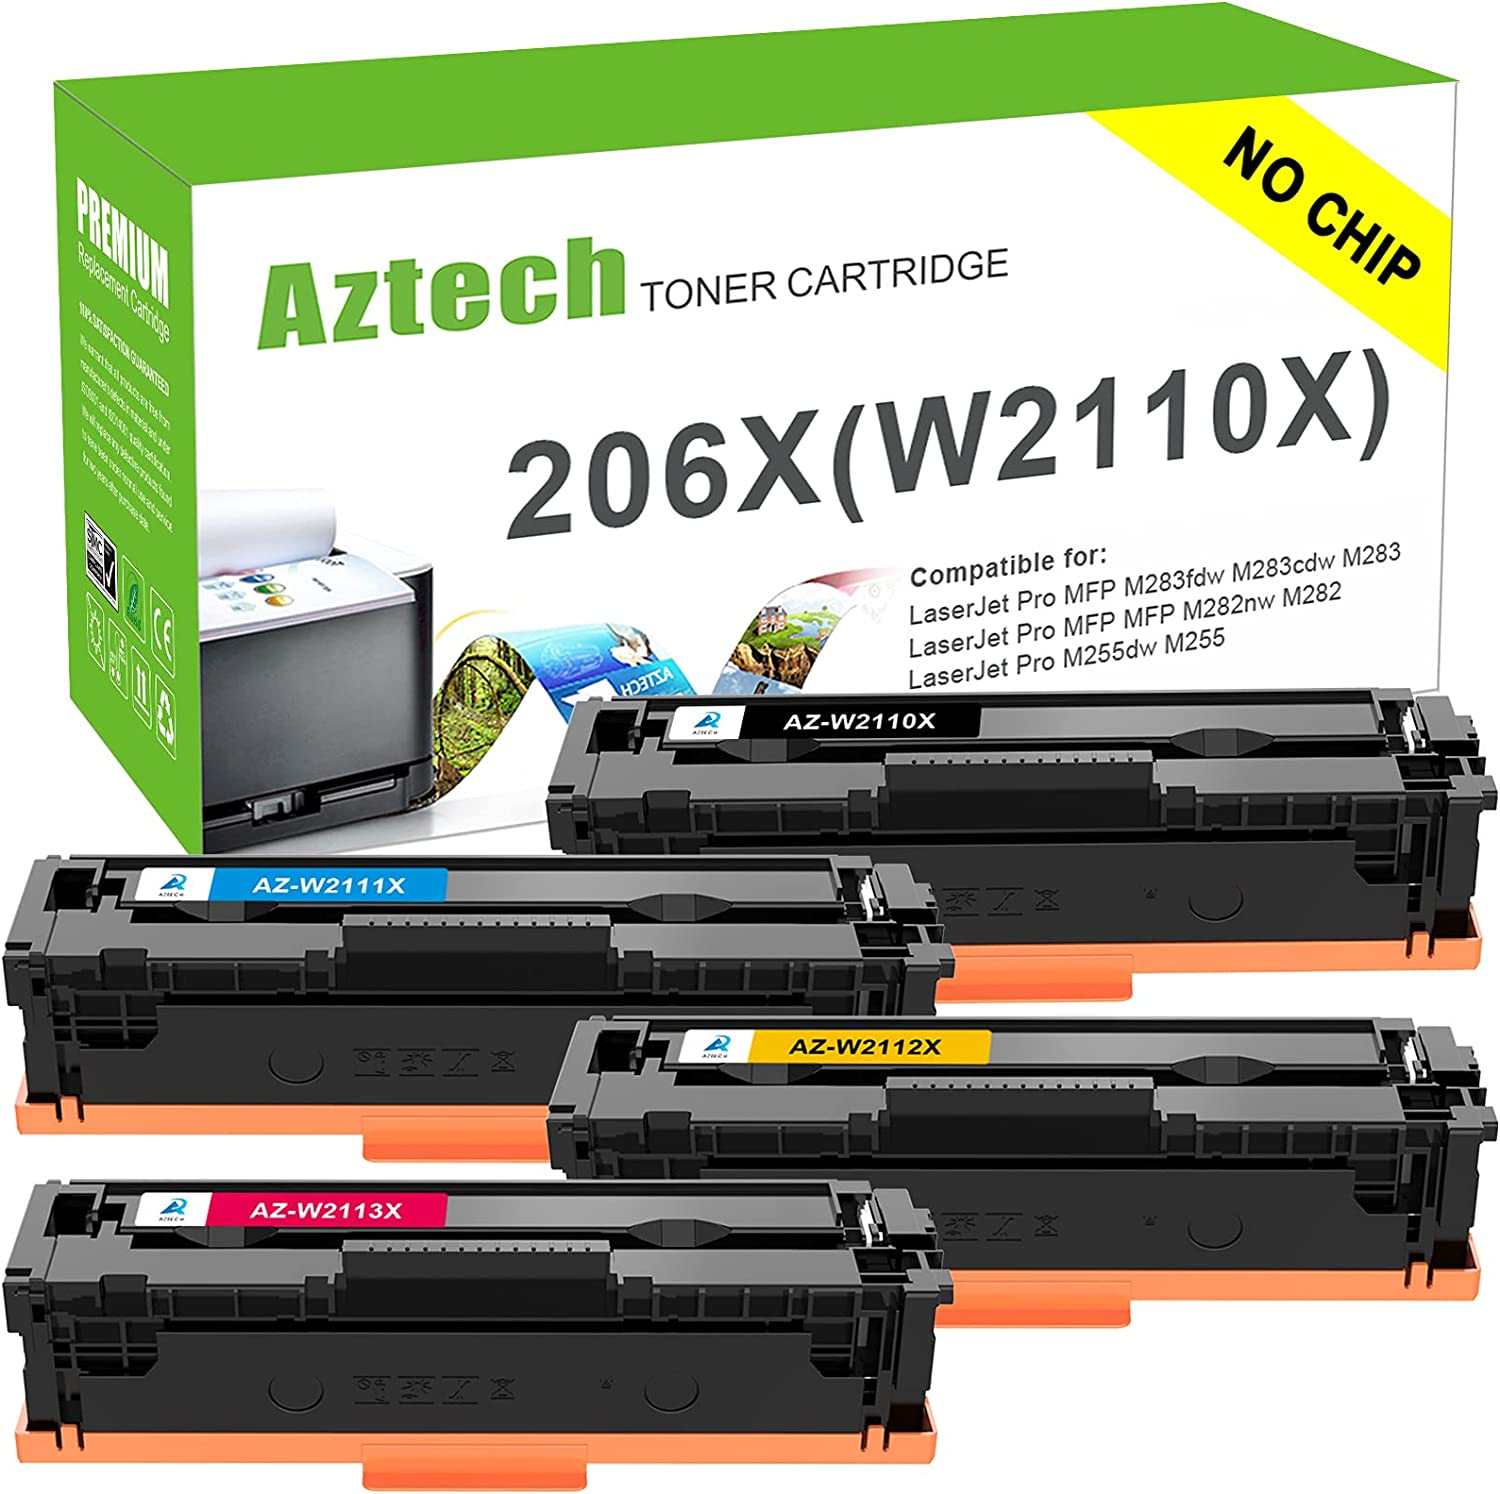 Aztech Compatible Toner Cartridge Replacement for HP 206X 206A W2110X W2110A HP Color Laserjet Pro M255dw MFP M283fdw M283cdw M283 M282nw M255 (Black Cyan Yellow Magenta, 4-Pack, No Chip)